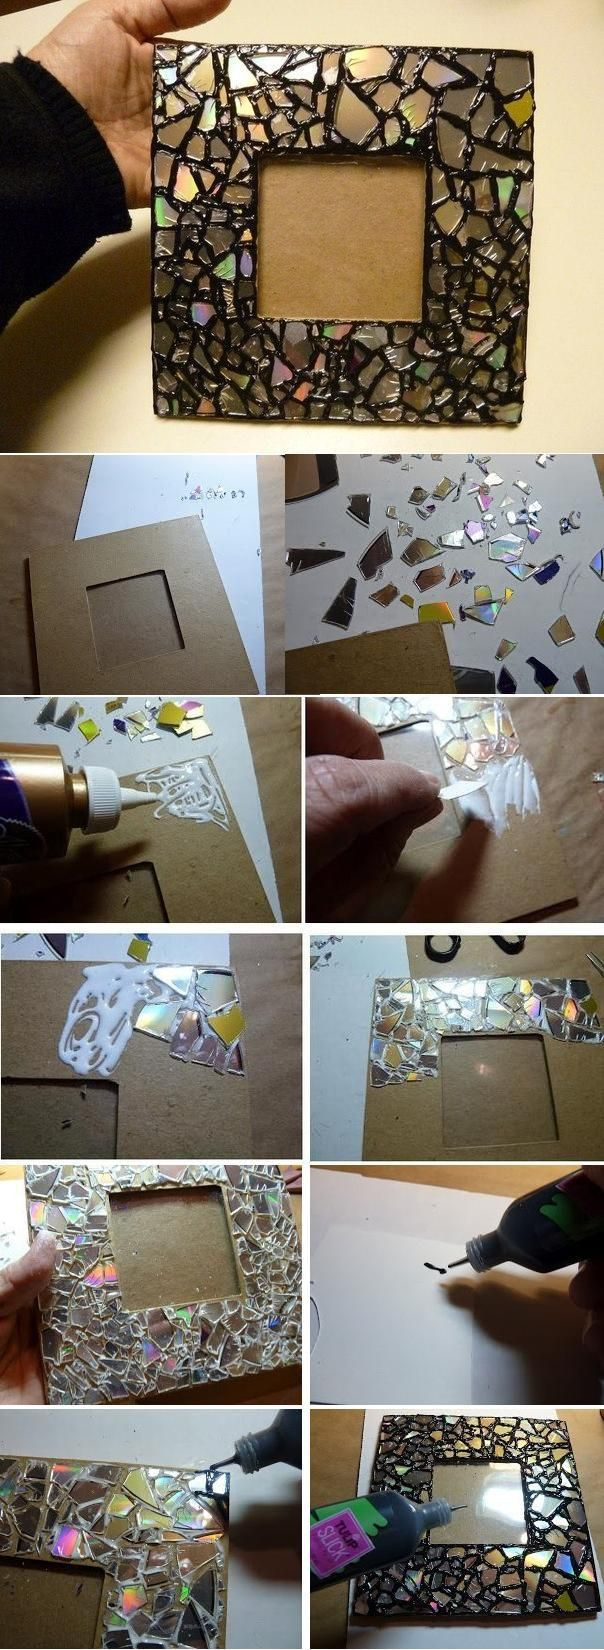 diy, diy projects, diy craft, handmade, diy ideas, diy old cd mosaic mirror frame